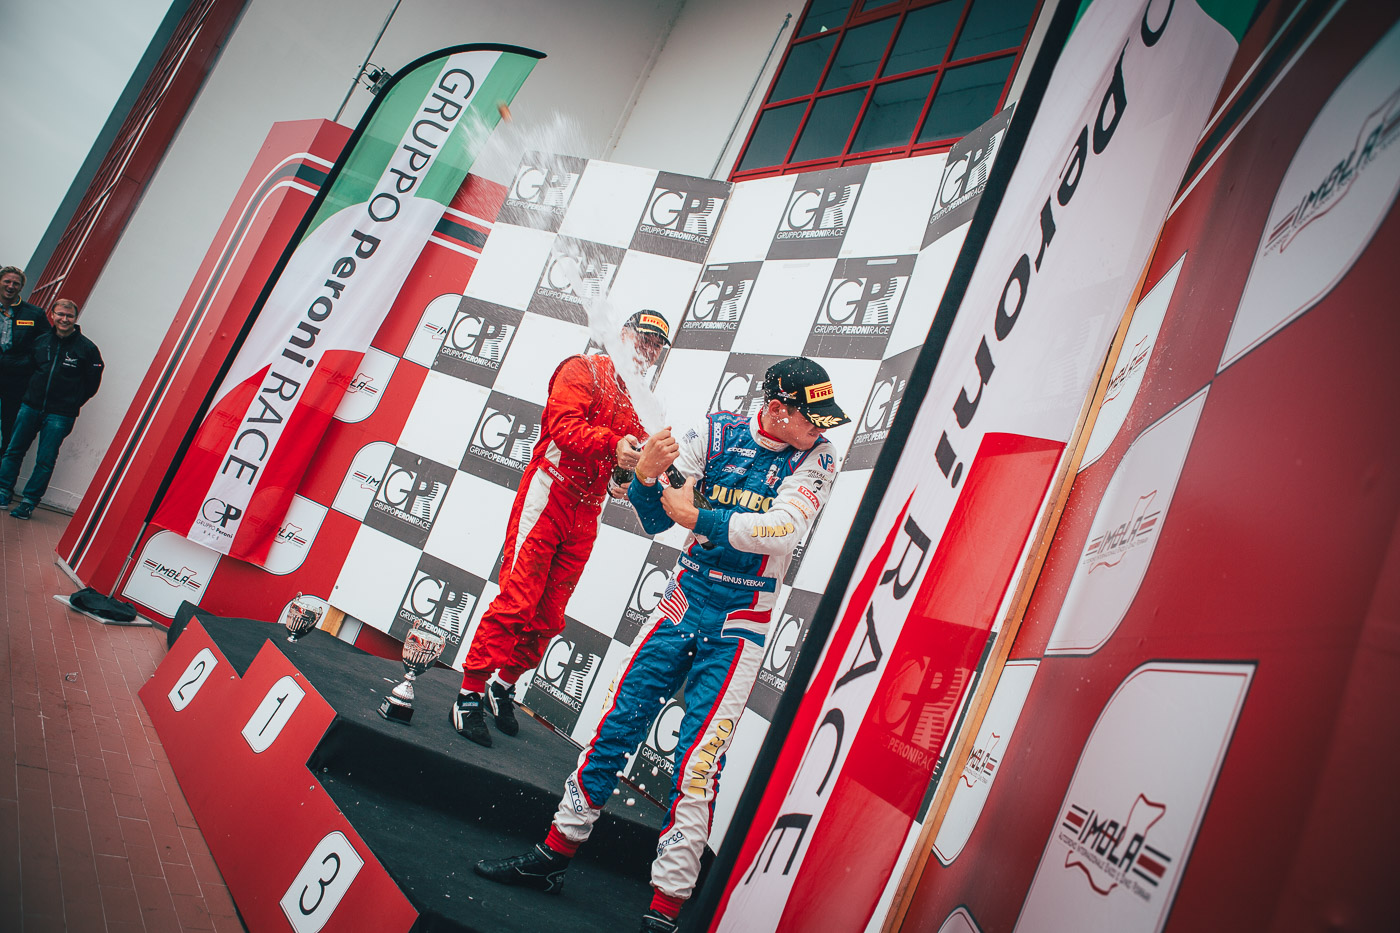 Van Kalmthout wins last season race 2017 in the OPEN class.